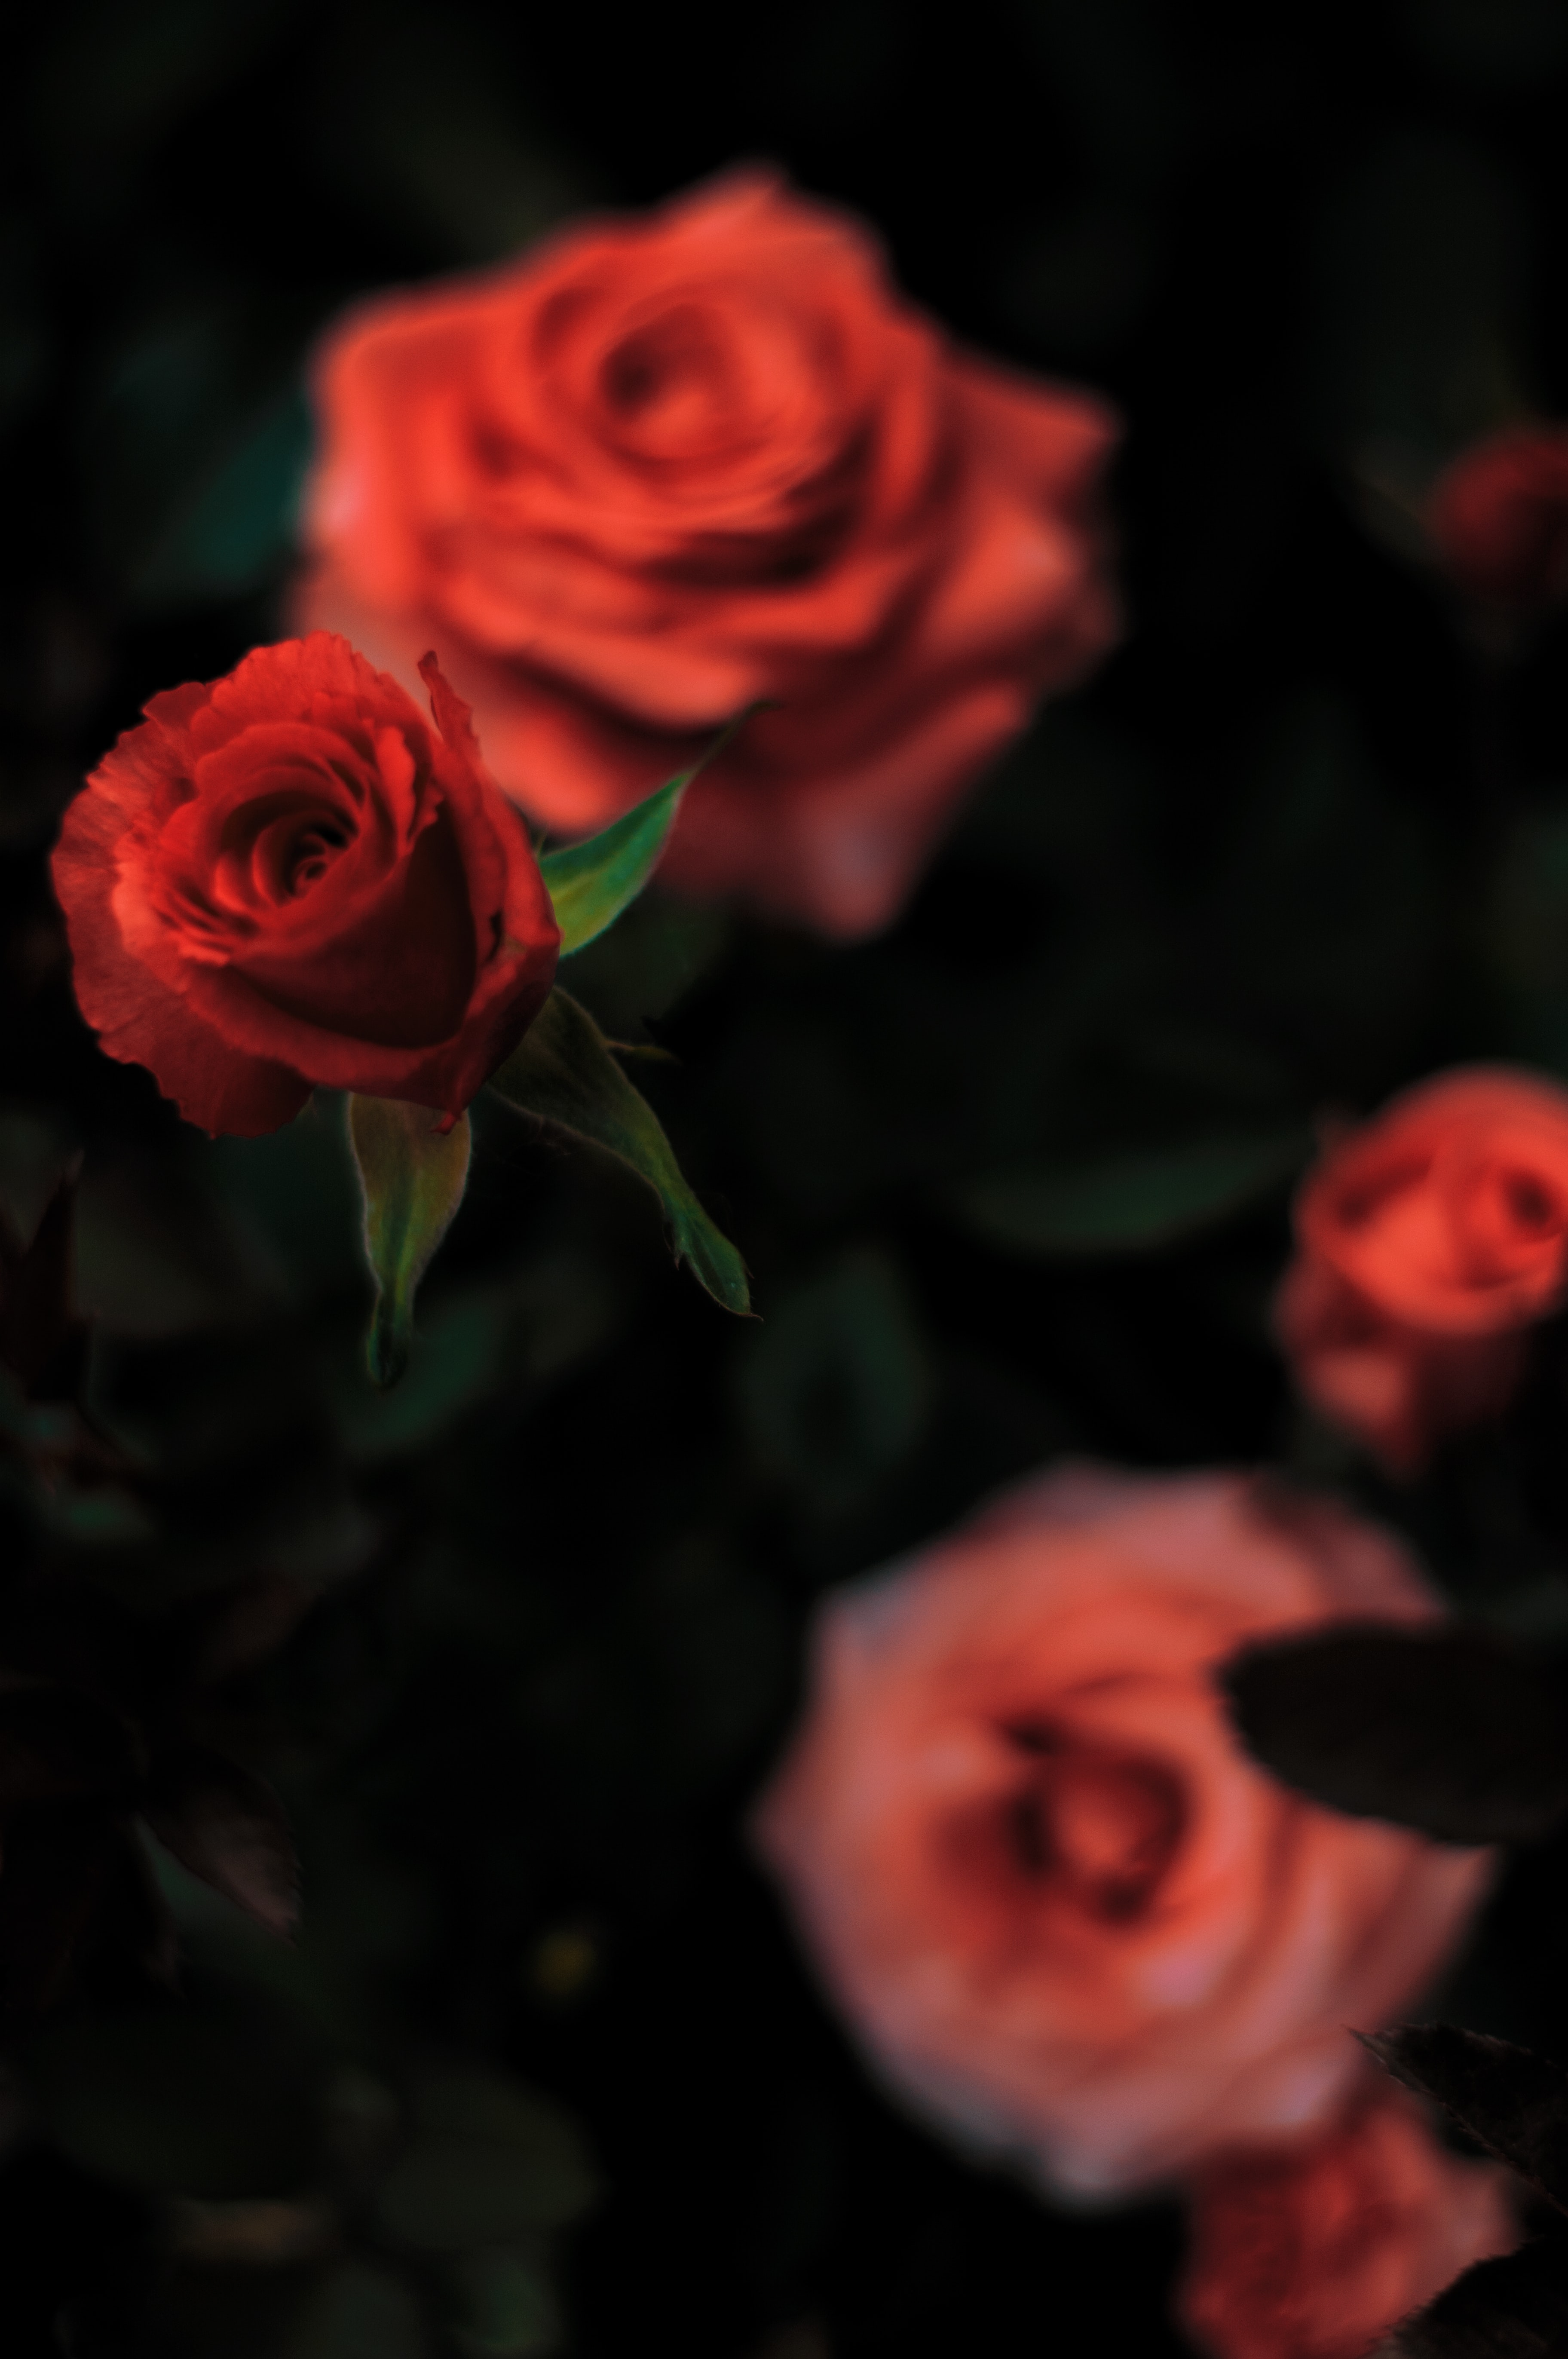 red rose in shallow focus photography